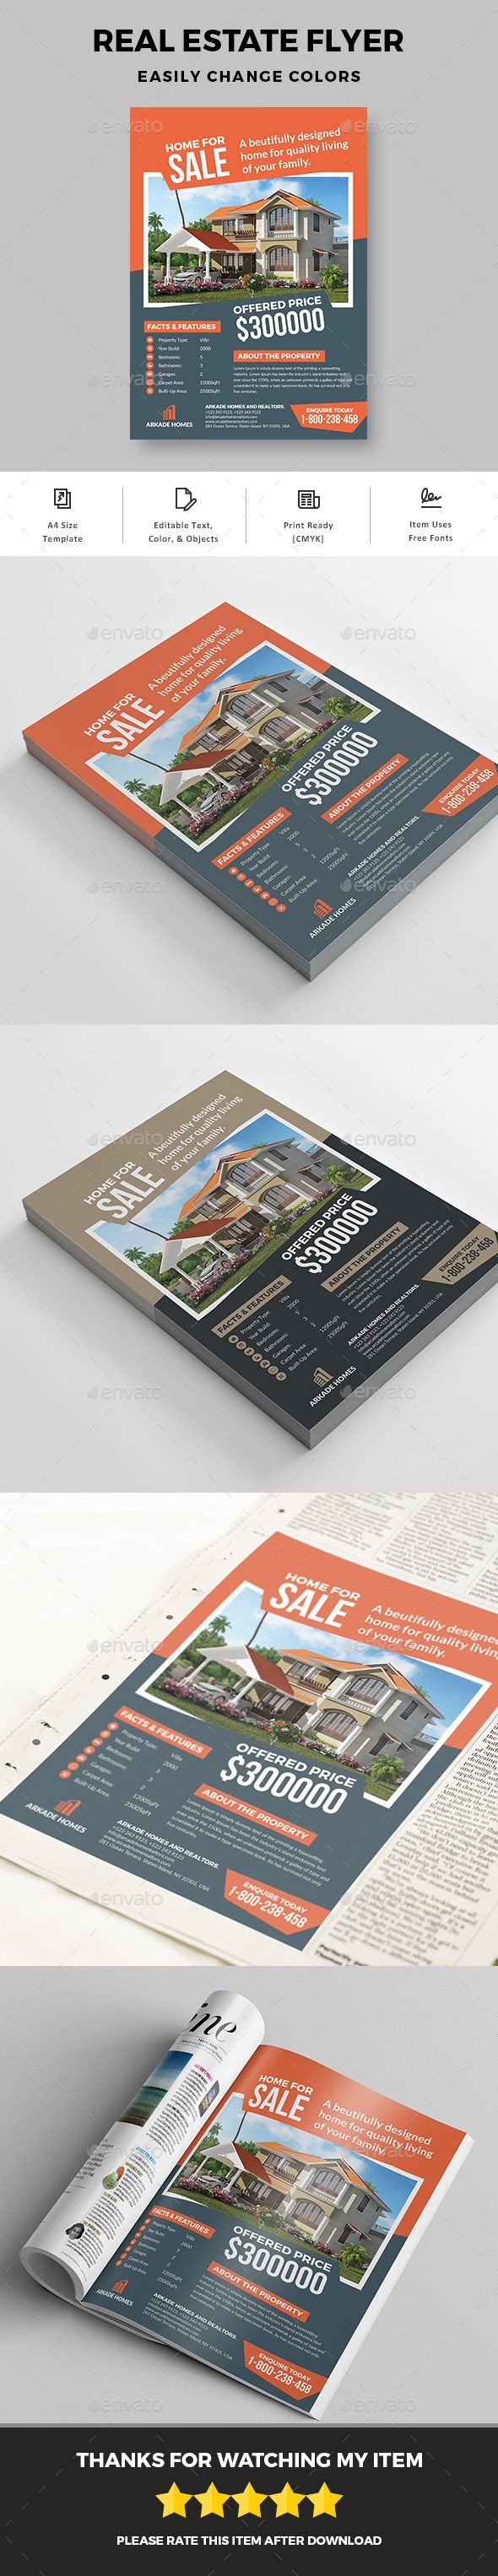 Real estate flyer by graphicsegg Simple Real Estate Flyer Template is a great tool for promoting your real estate business also useful for a realtor or a real esta